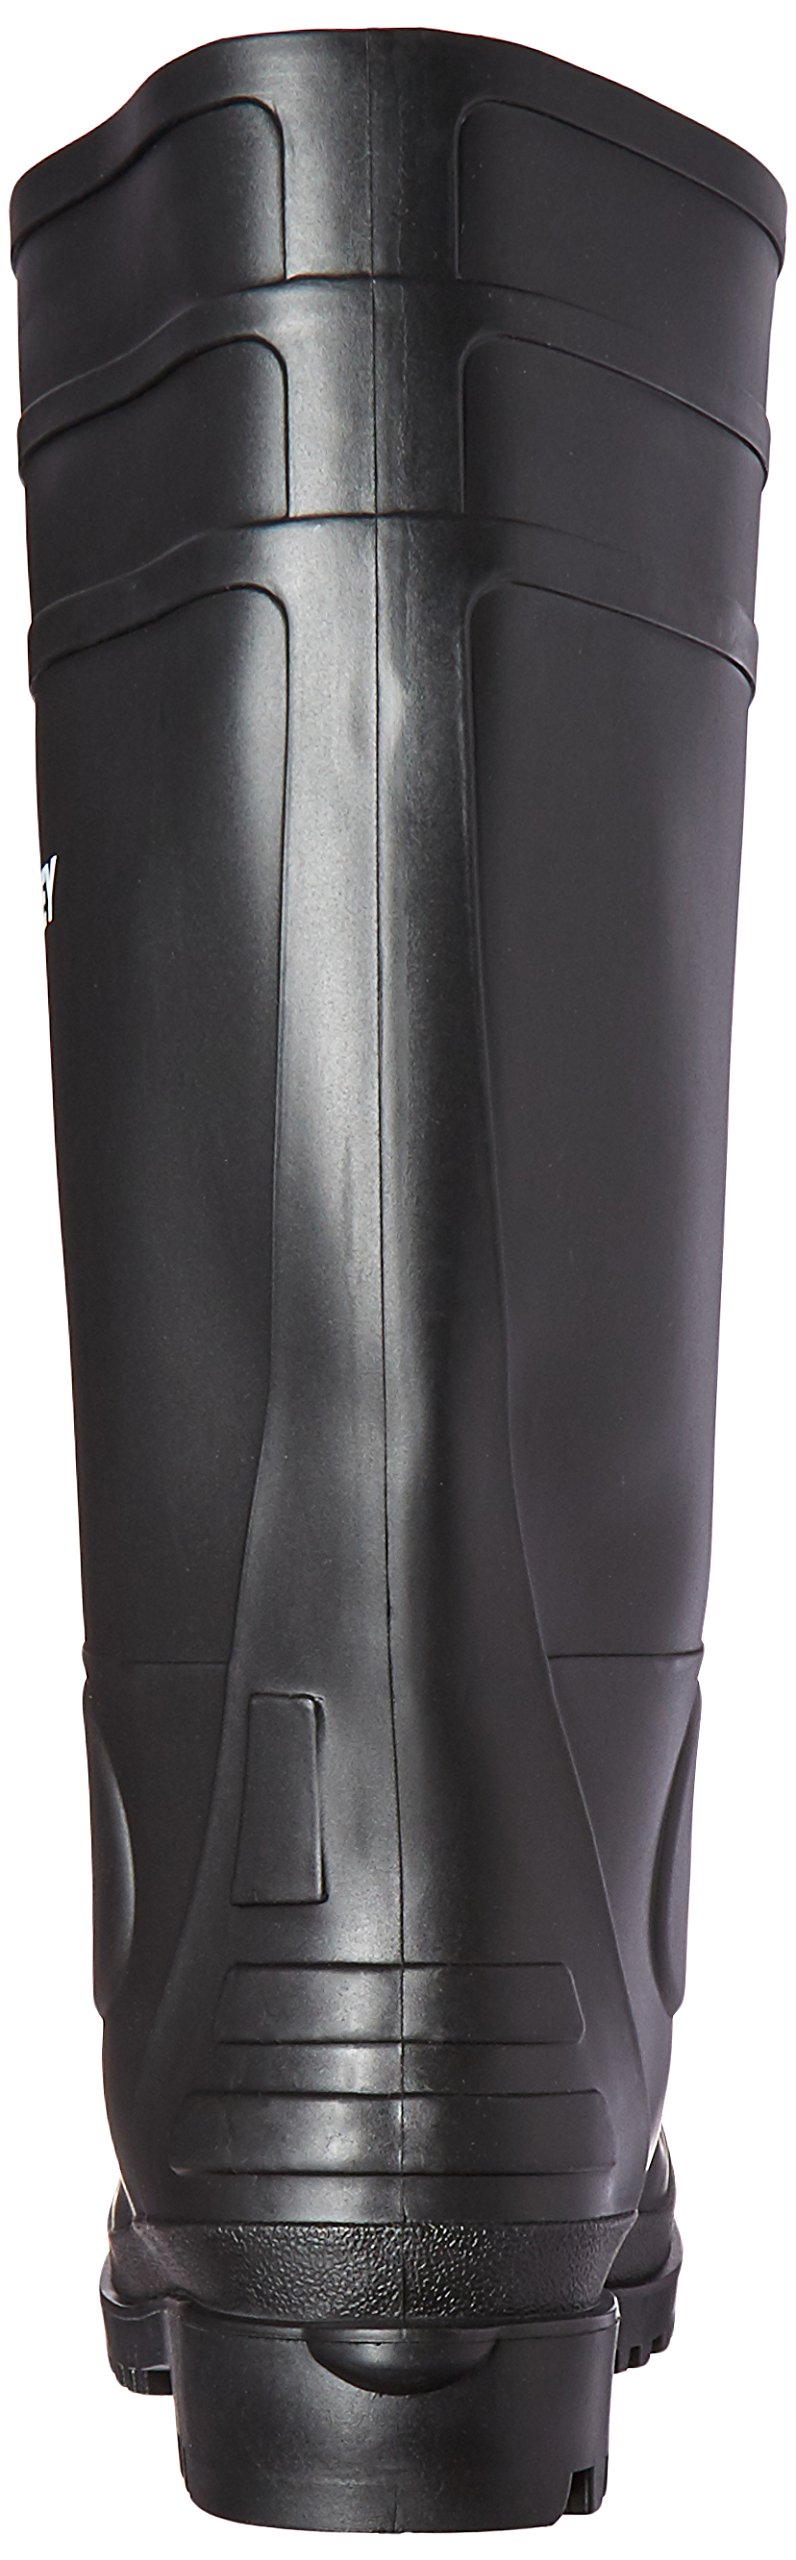 TINGLEY 31151 Economy SZ12 Kneed Boot for Agriculture, 15-Inch, Black by TINGLEY (Image #2)